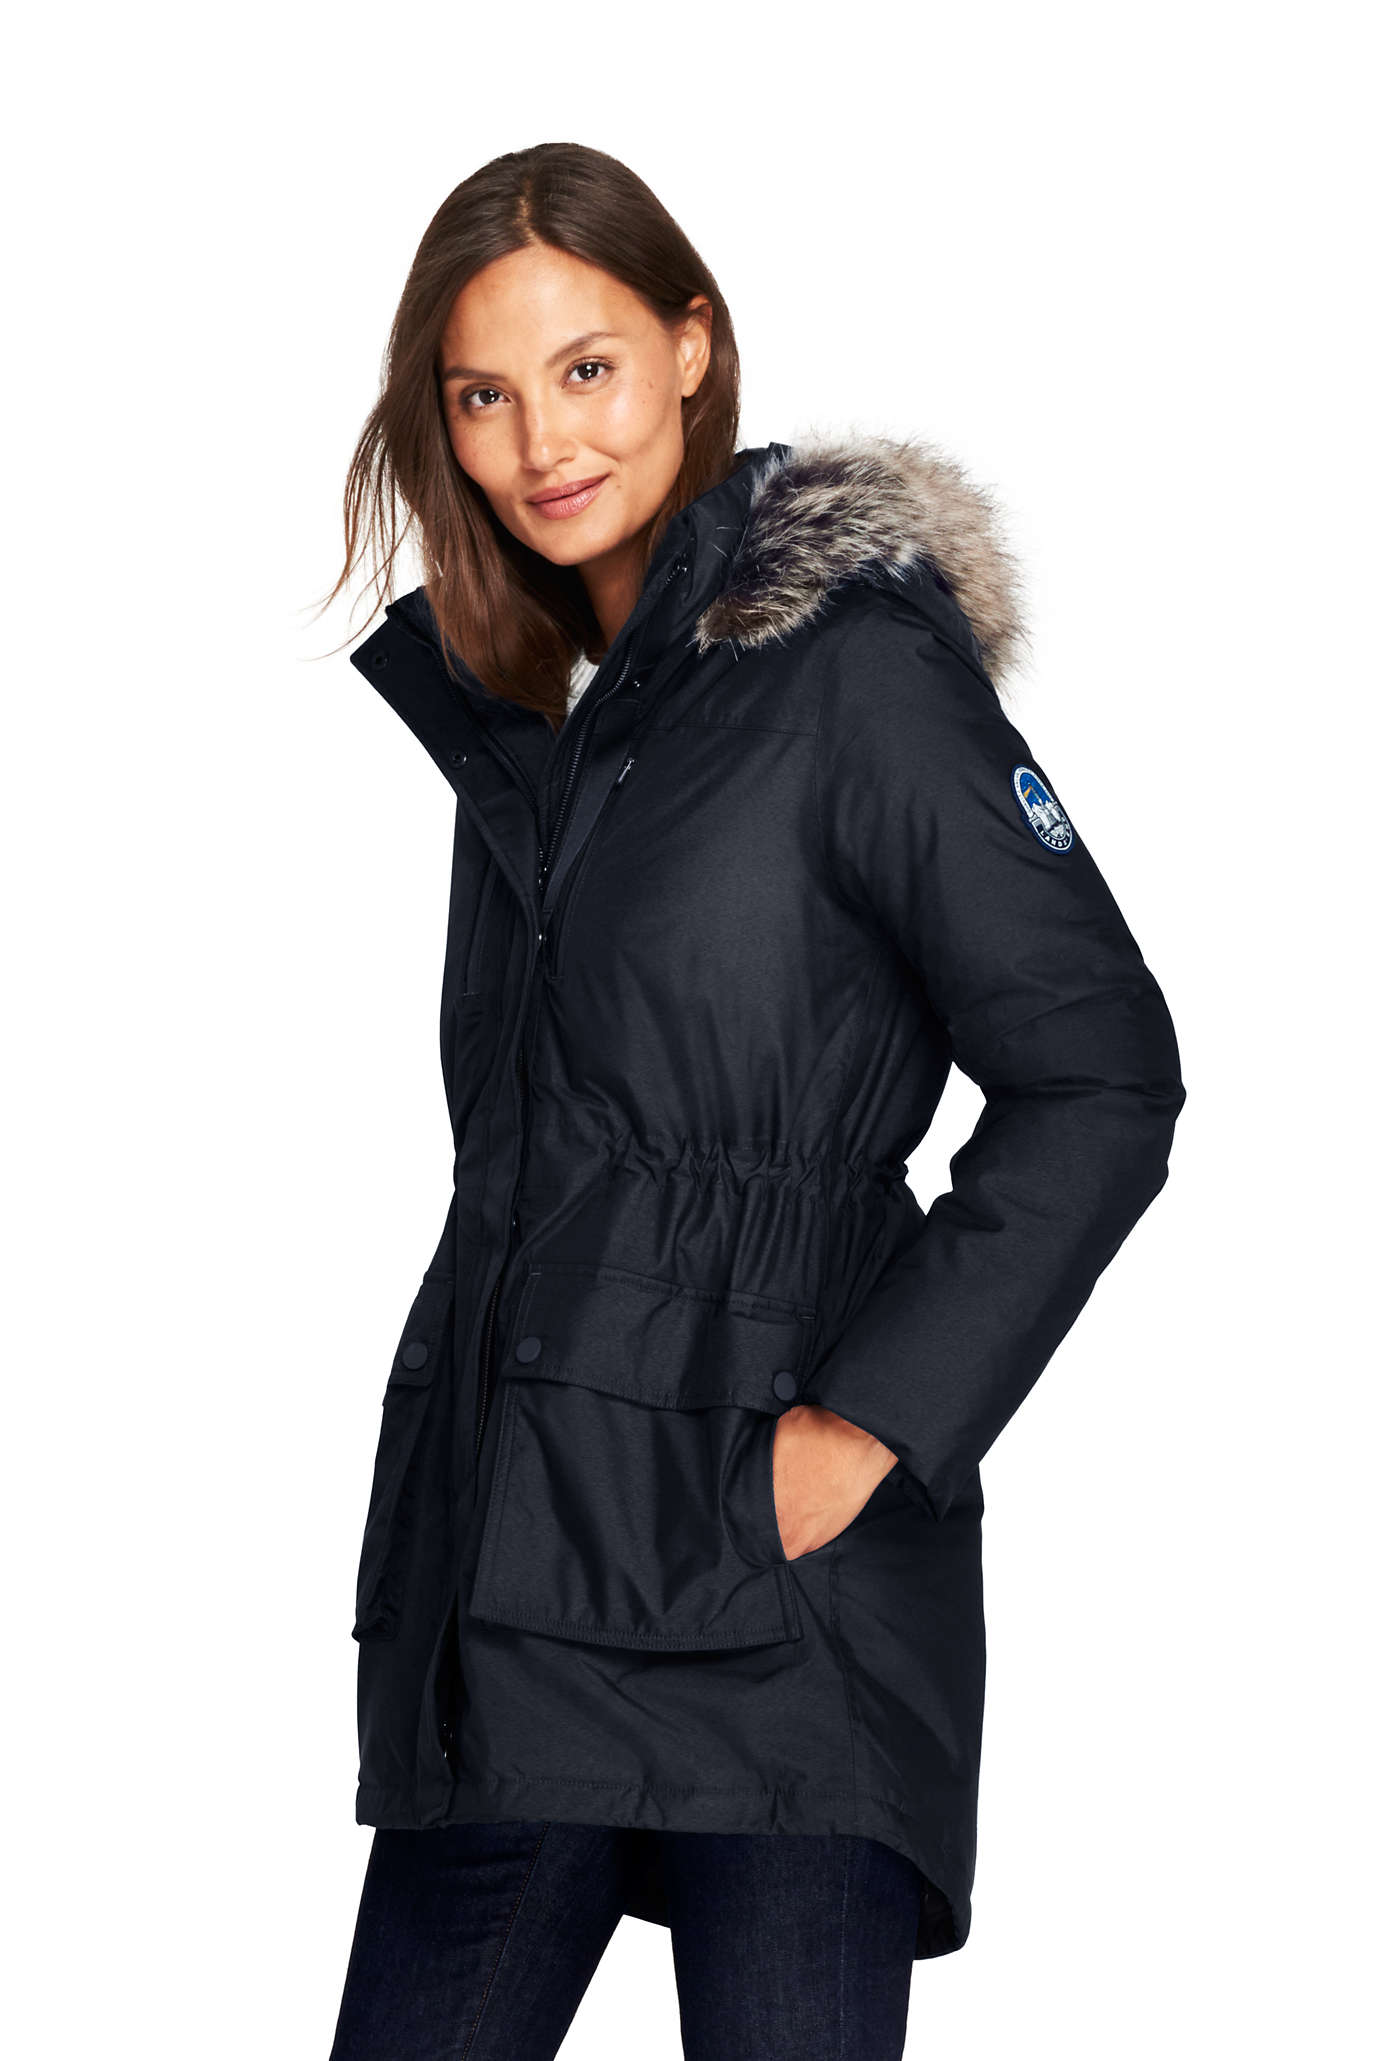 e7bb657b3d8 Womens Winter Coats   Jackets